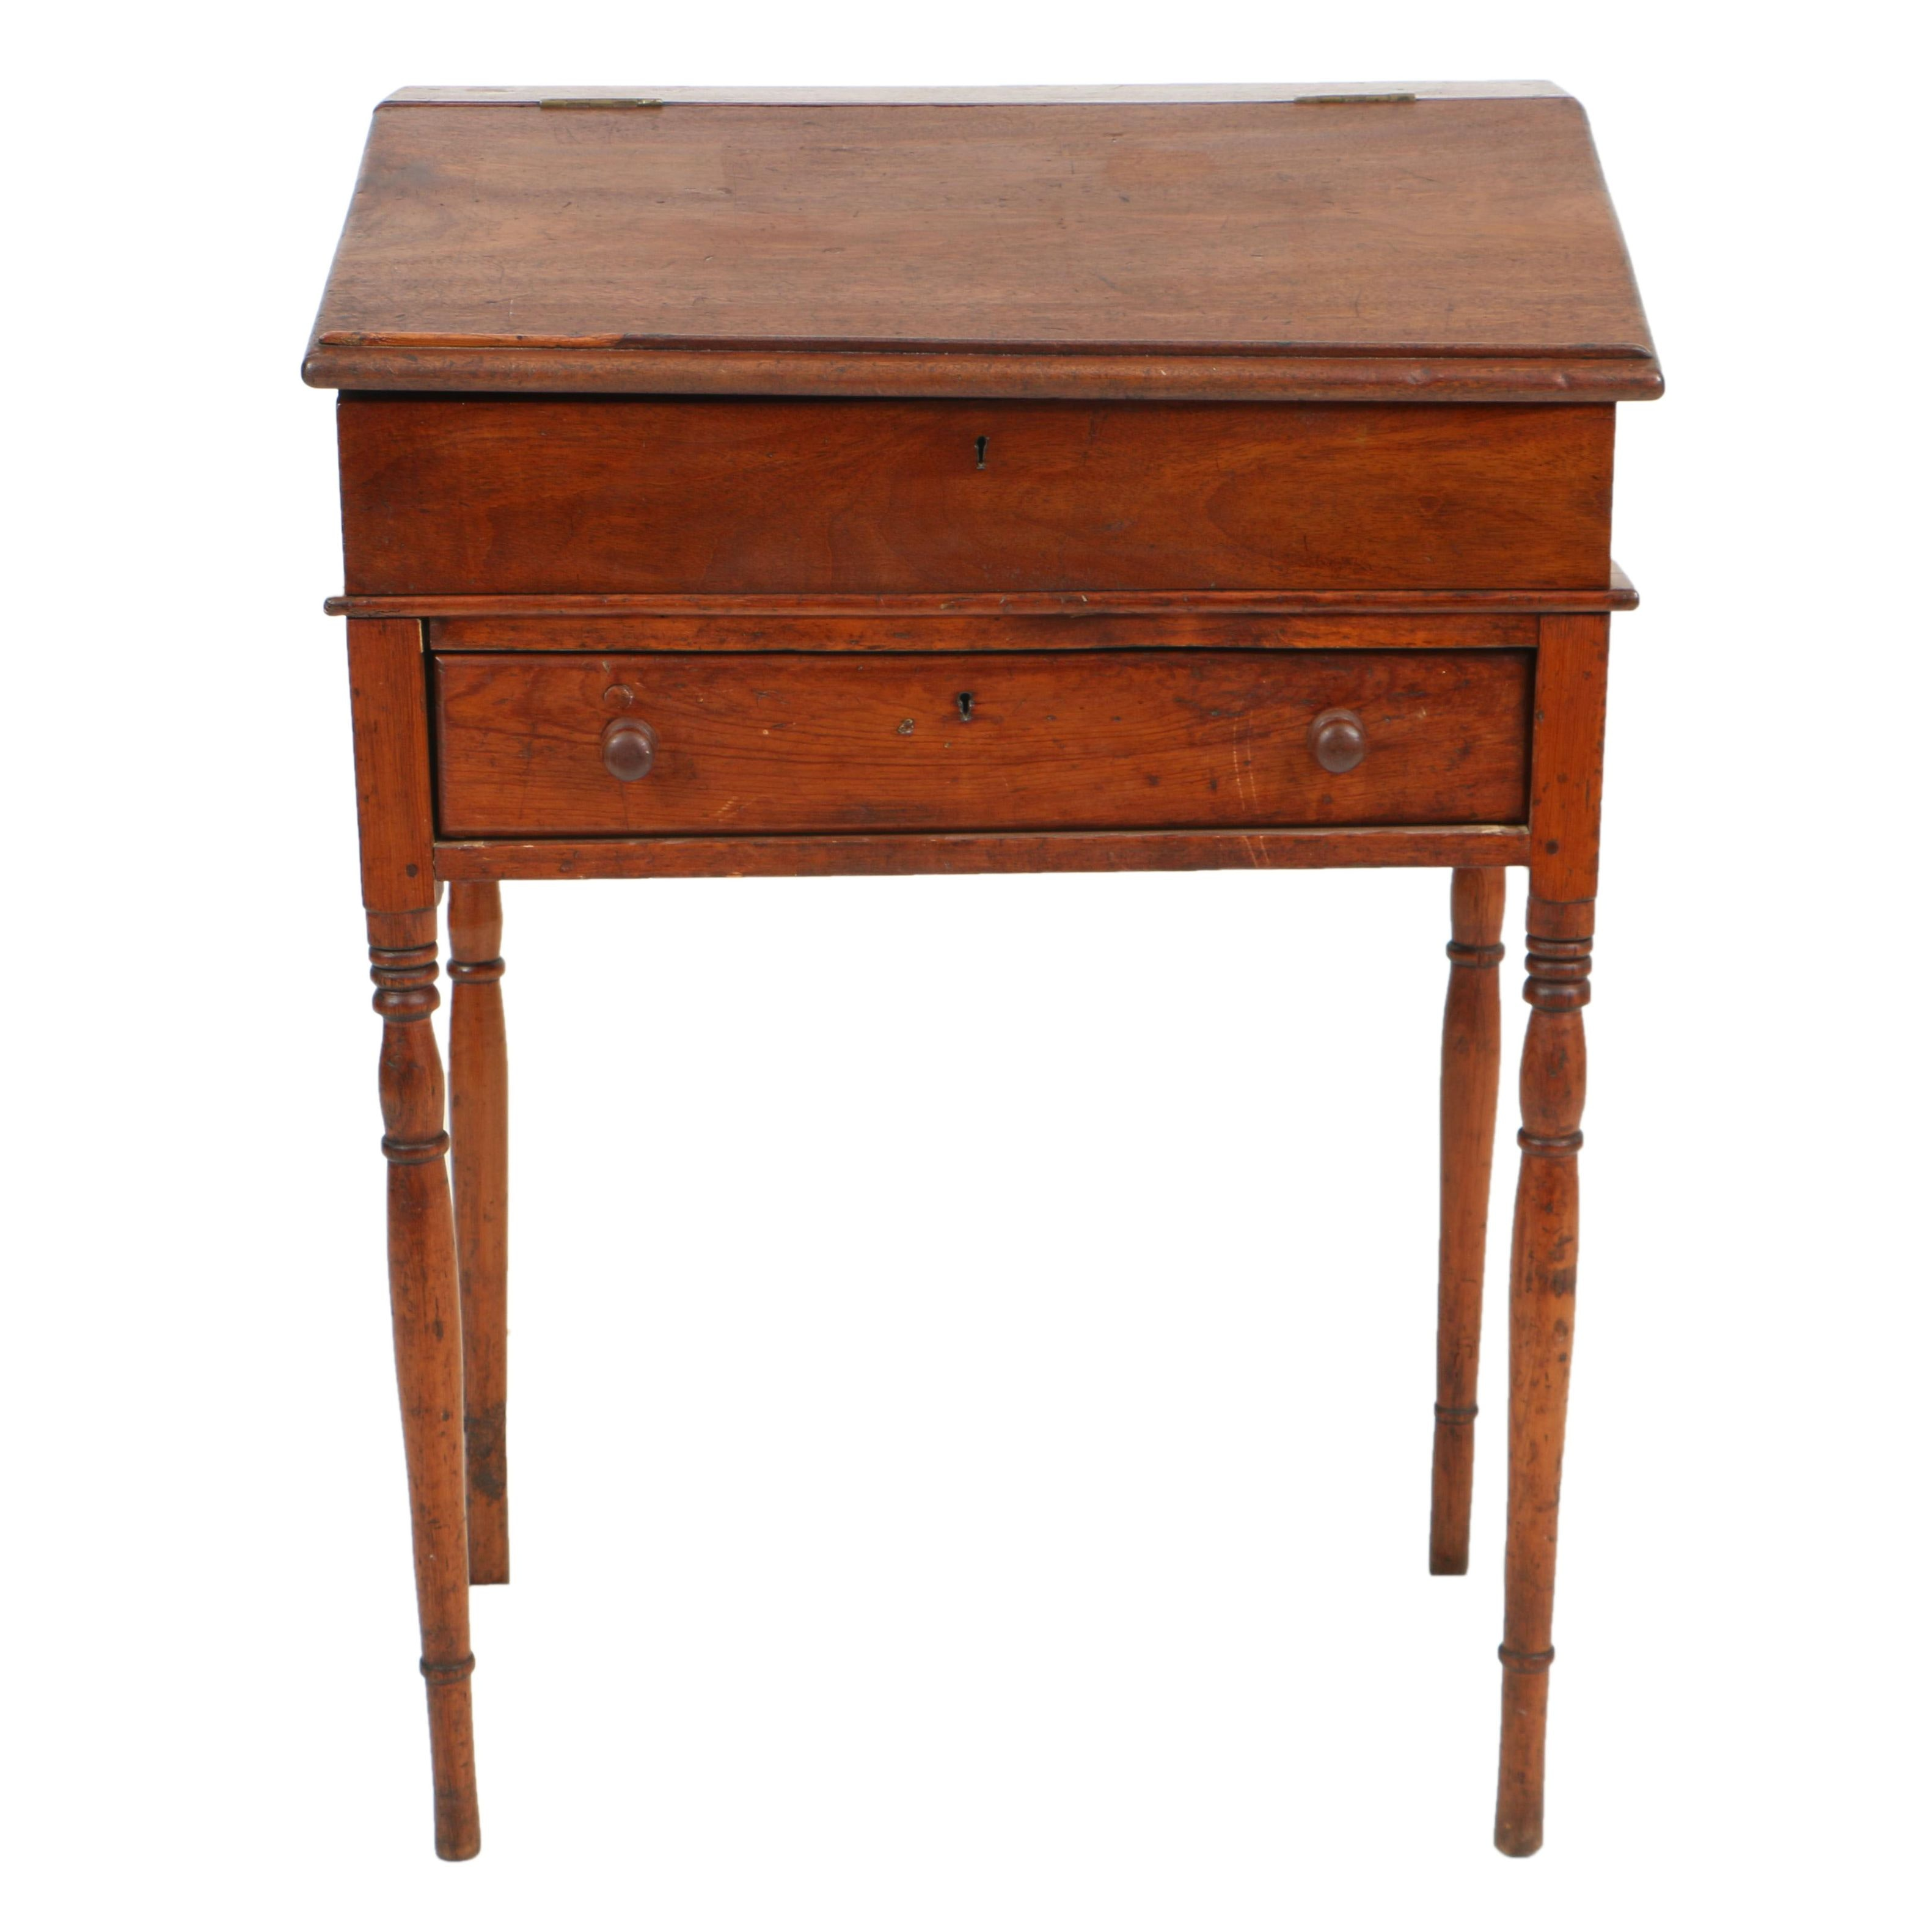 Antique Mahogany and Pine Desk-on-Stand, Circa 19th Century